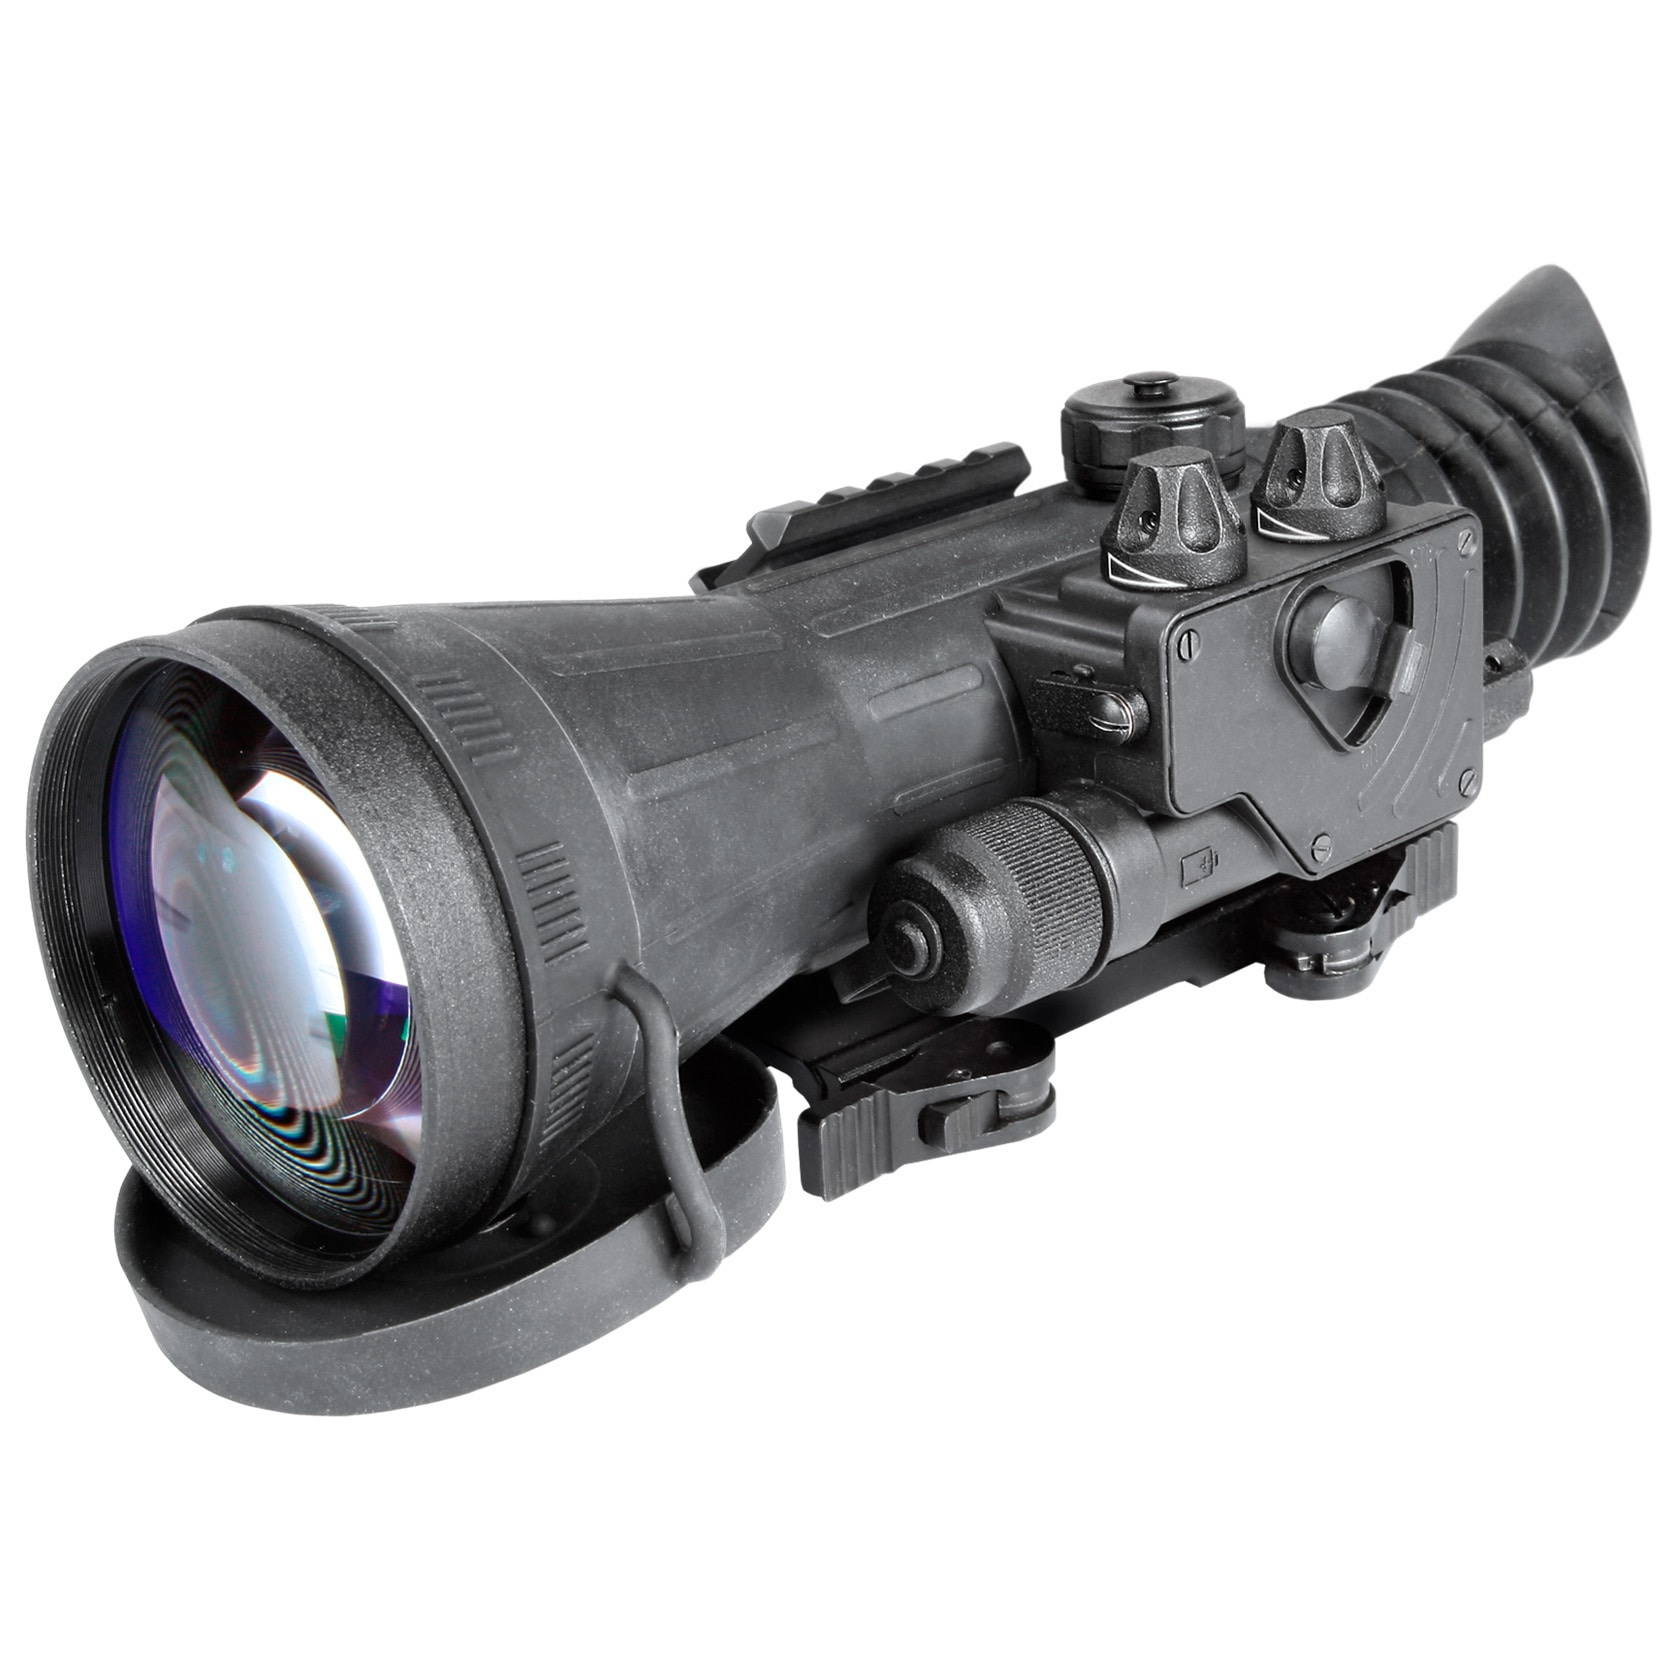 Armasight Vulcan 4.5X ID MG Compact Night Vision Rifle Scope Gen 2+ Improved Definition with Manual Gain by Overstock